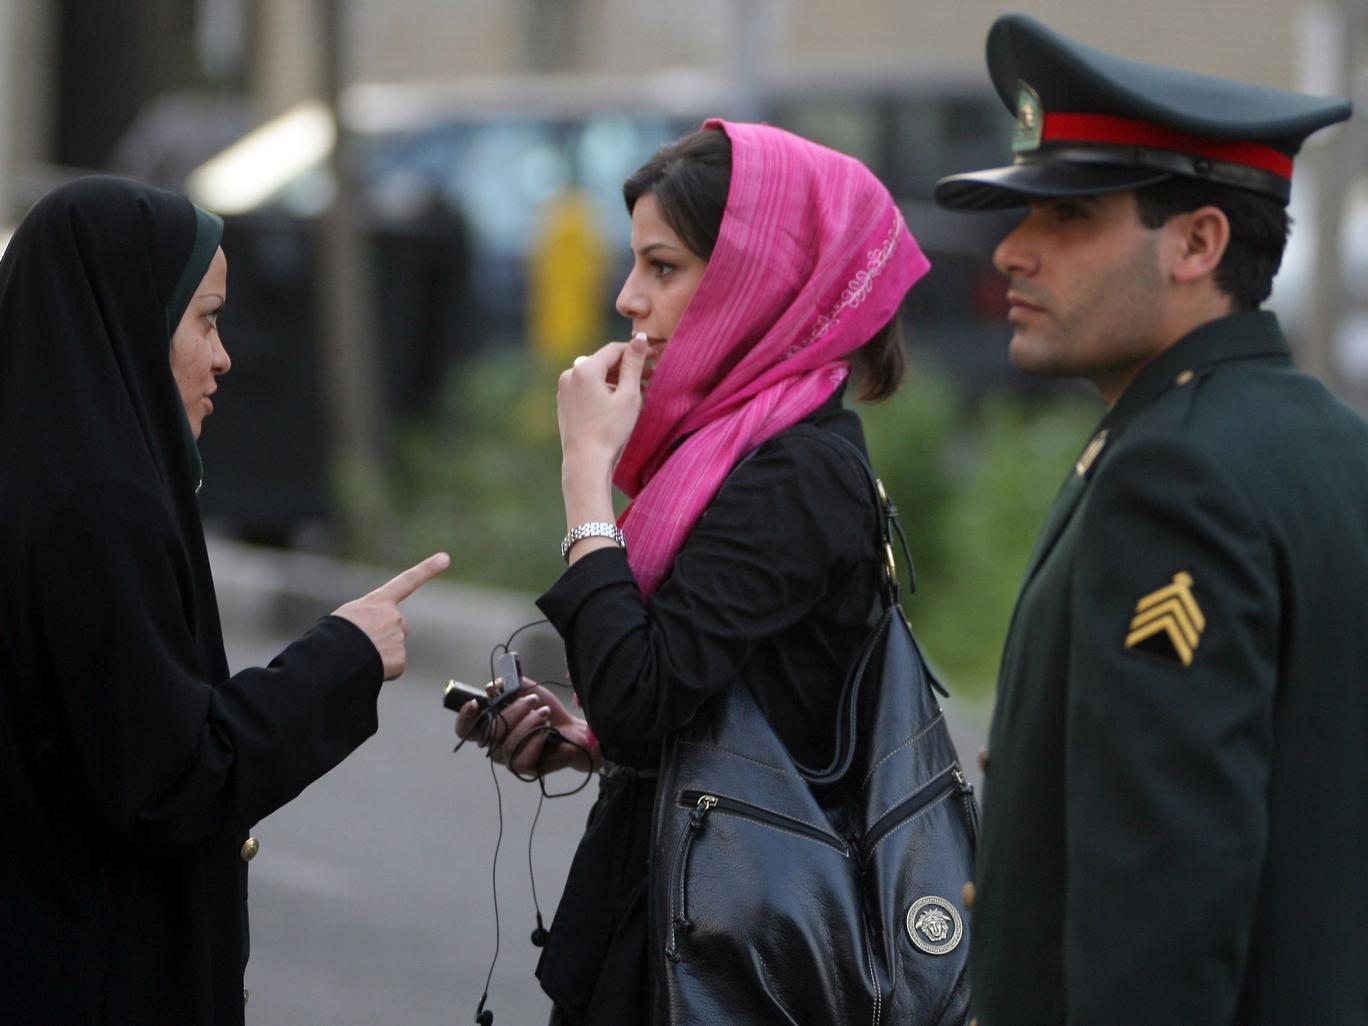 Release Iranian women's rights defenders detained for peacefully protesting against forced veiling